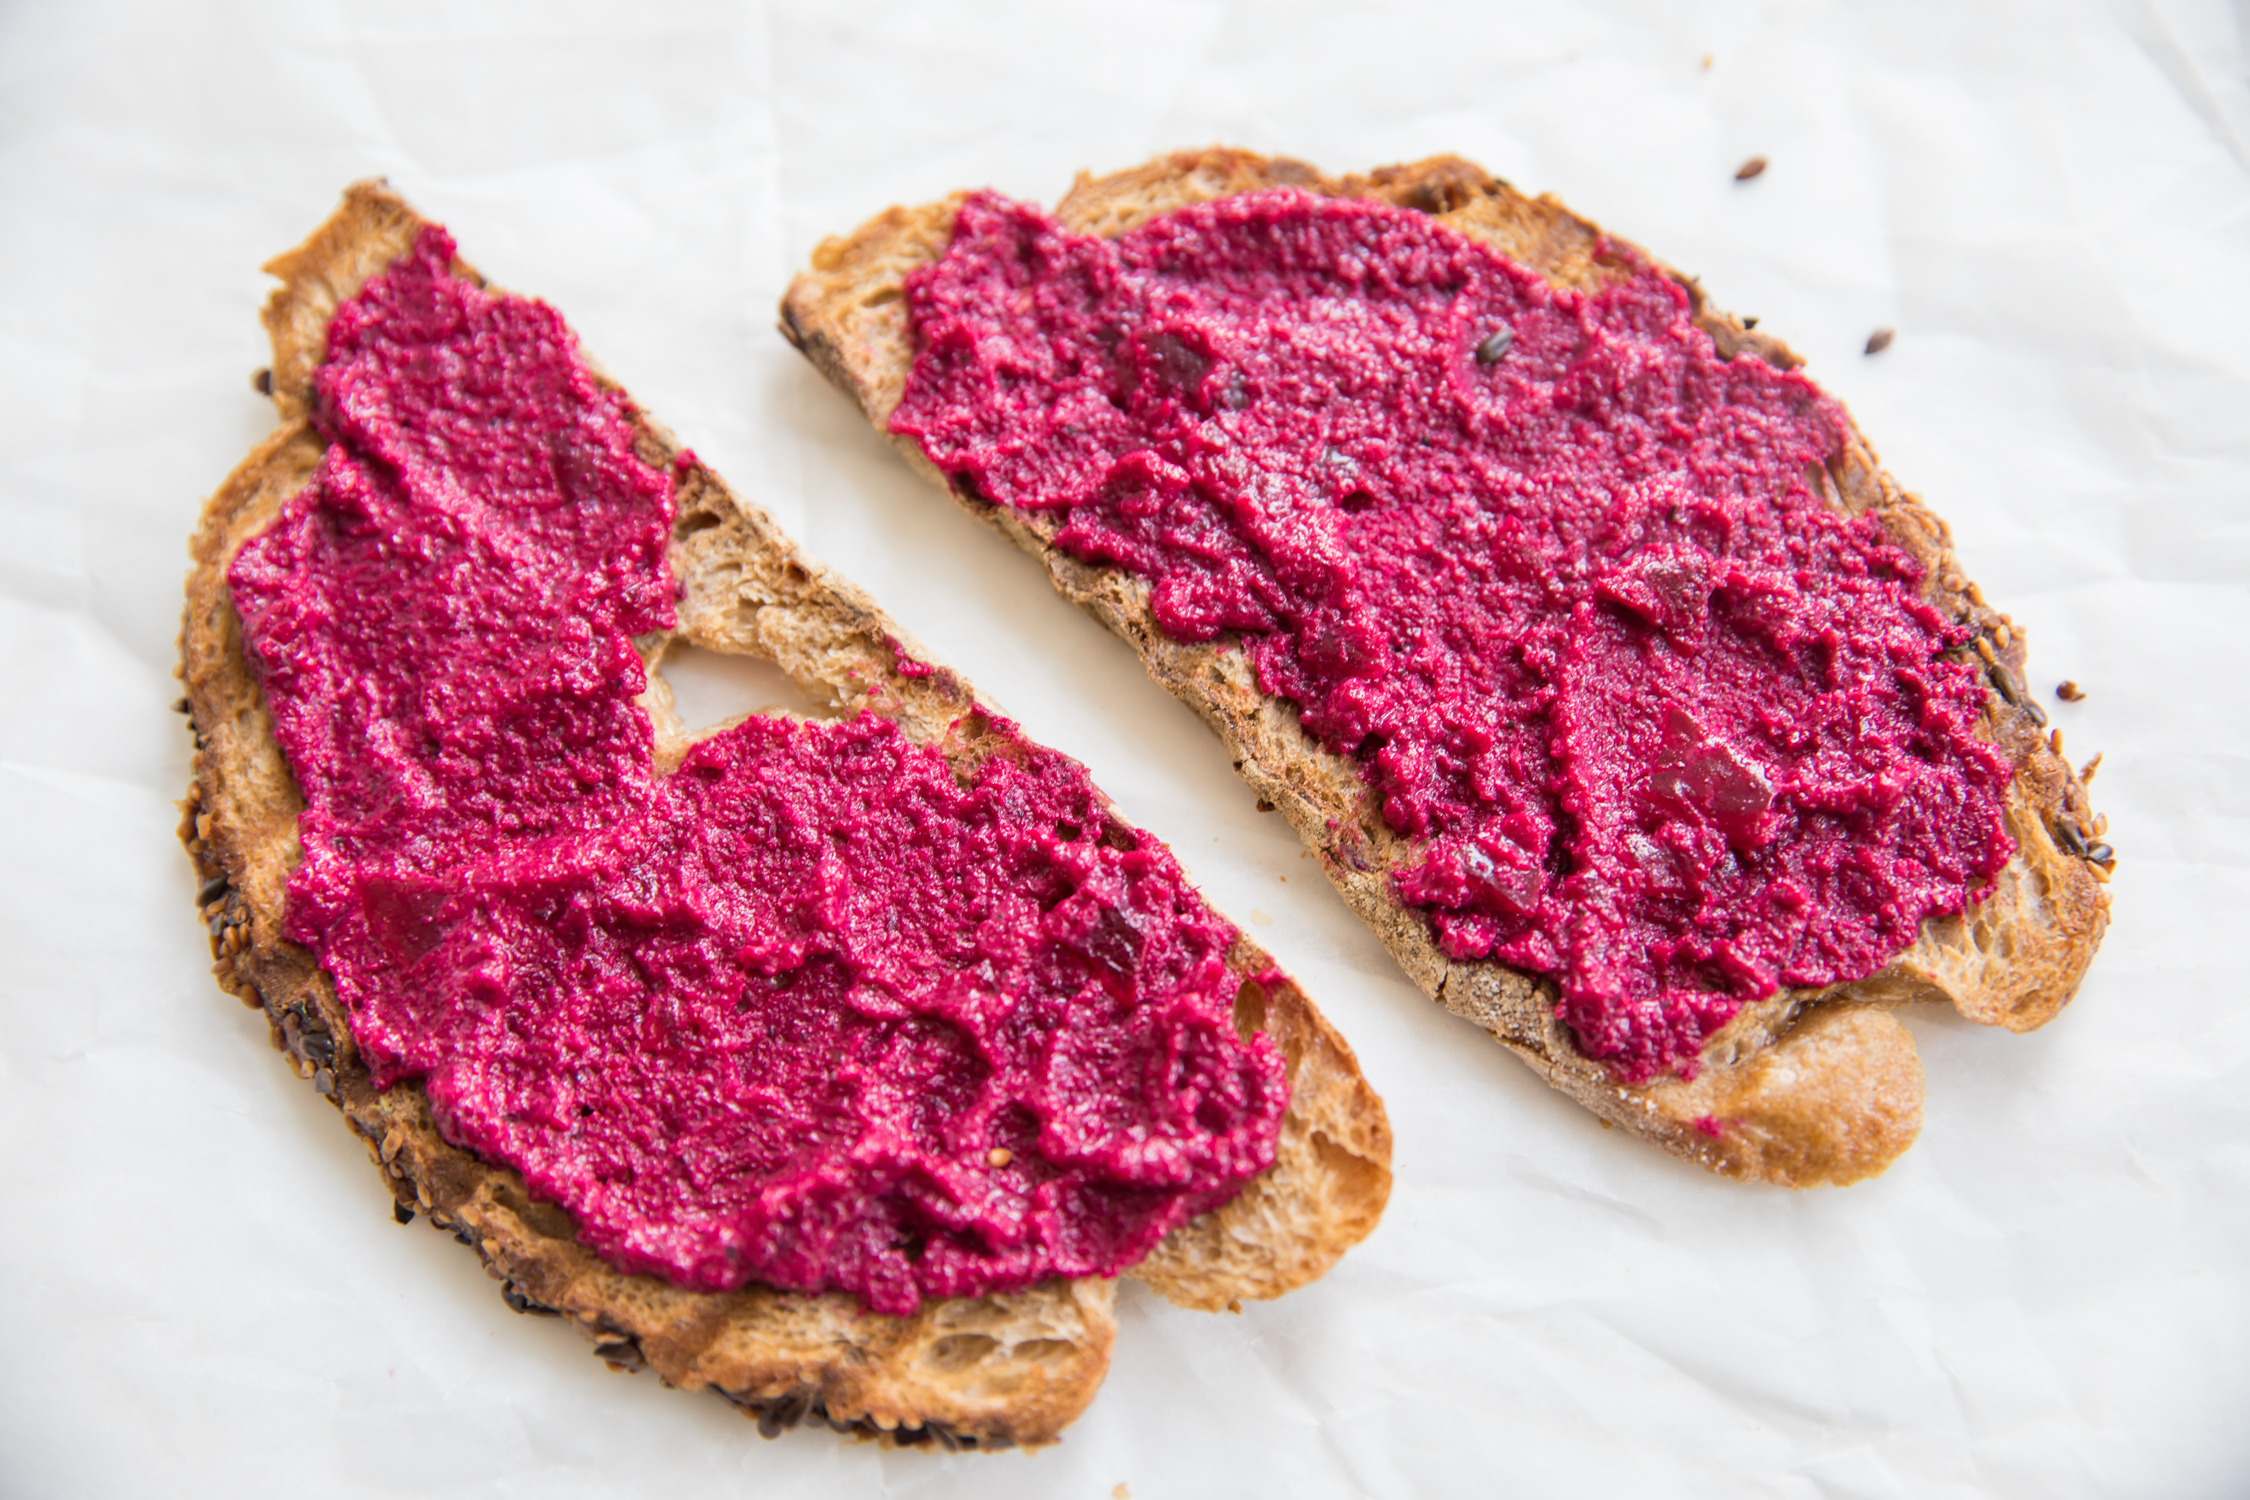 avocado-rose-beetroot-hummus-toast-2136.jpg